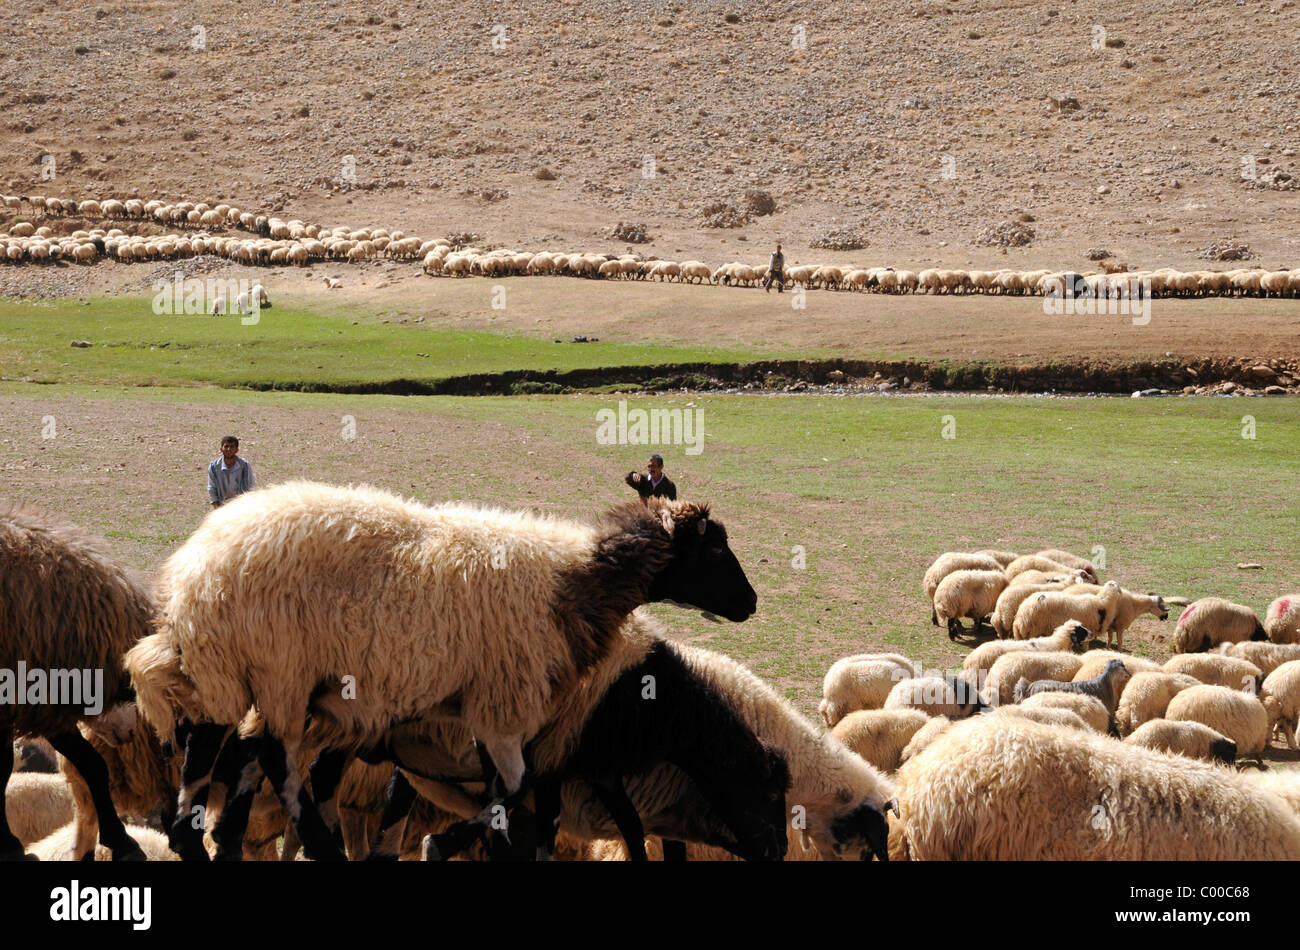 Nomadic Kurdish shepherds and their flocks of sheep in the mountains in the Lake Van region of Turkey's southeast. - Stock Image